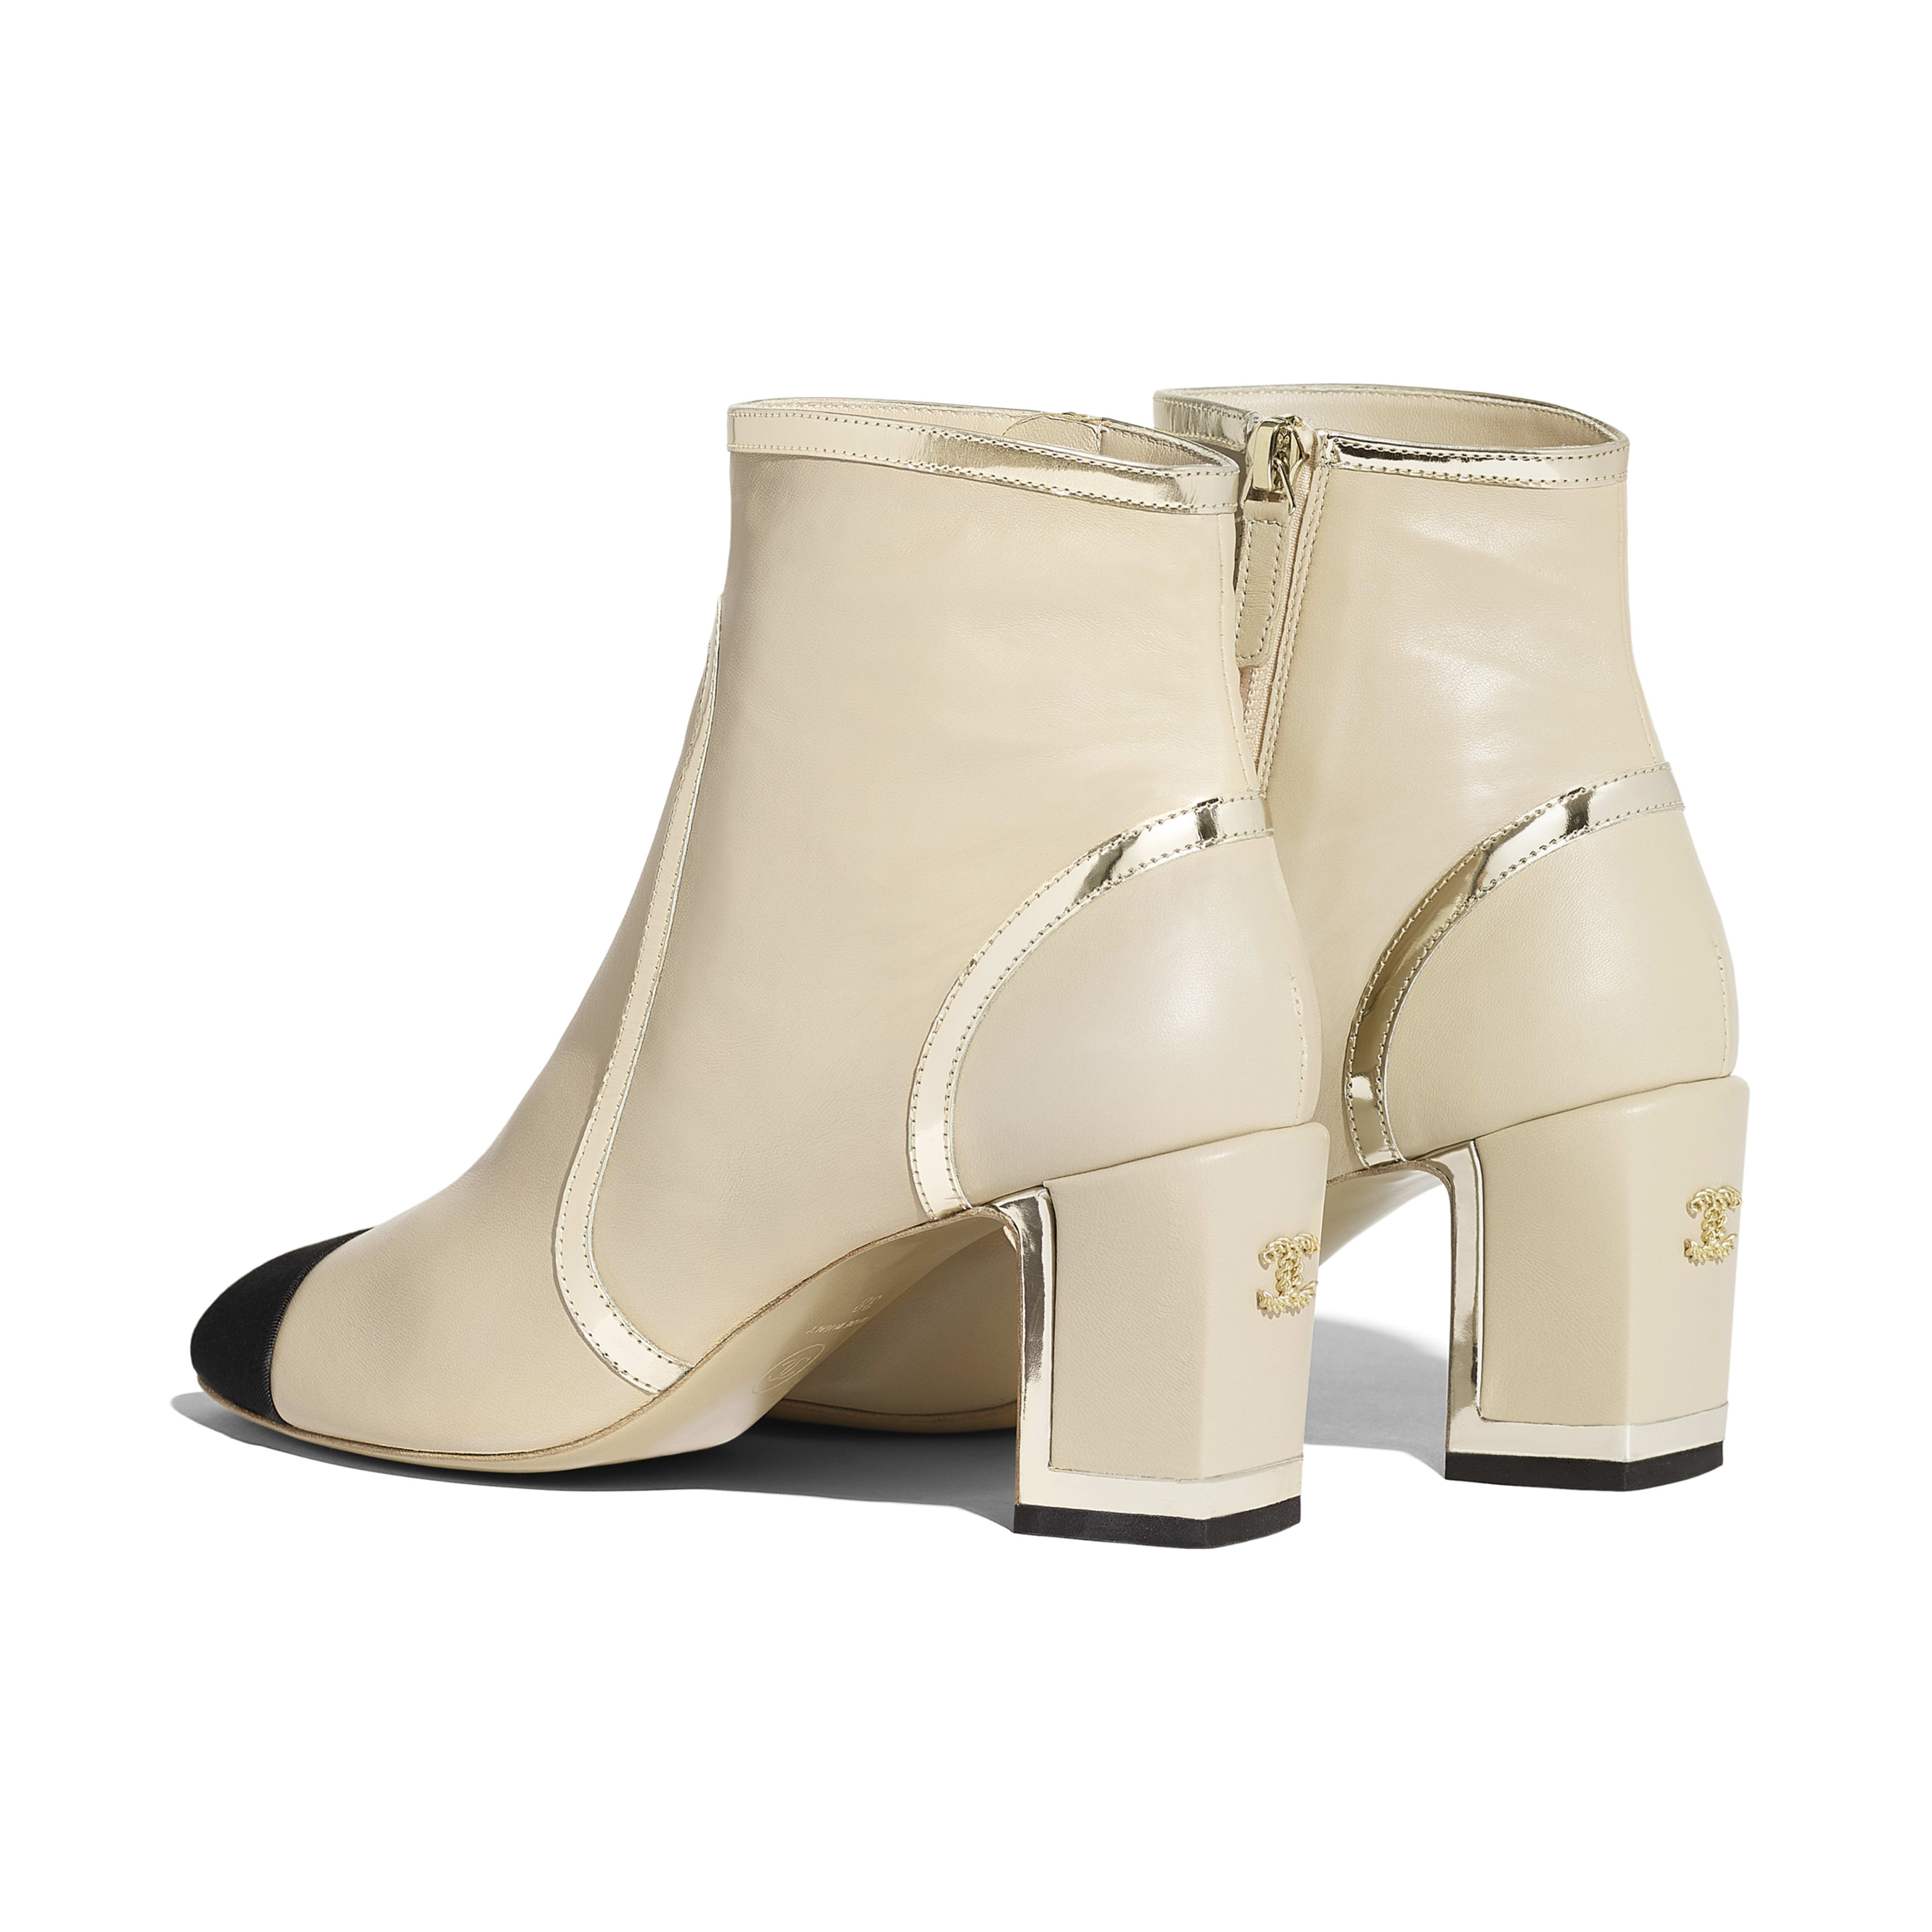 Ankle Boots - Beige & Black - Laminated Lambskin - Other view - see full sized version